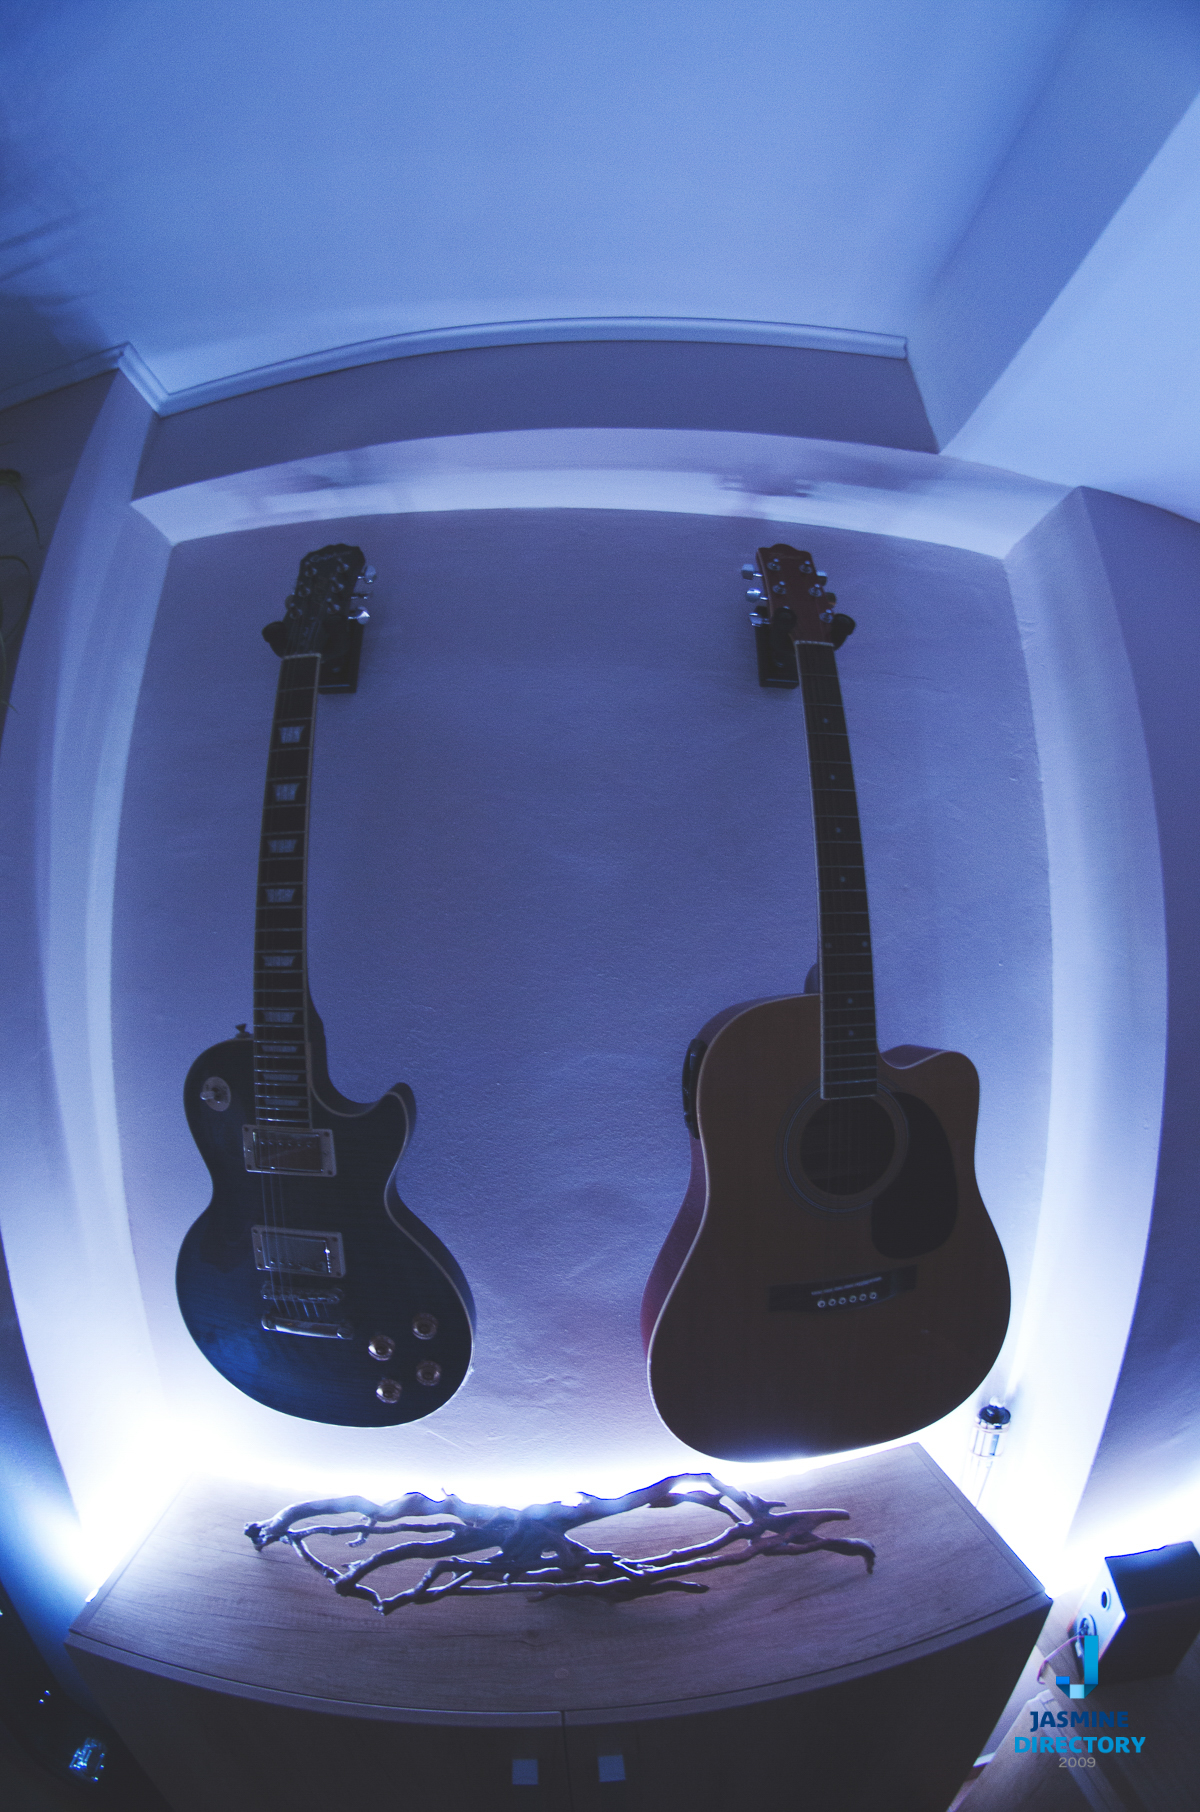 Two guitars forming a simetrical photograph